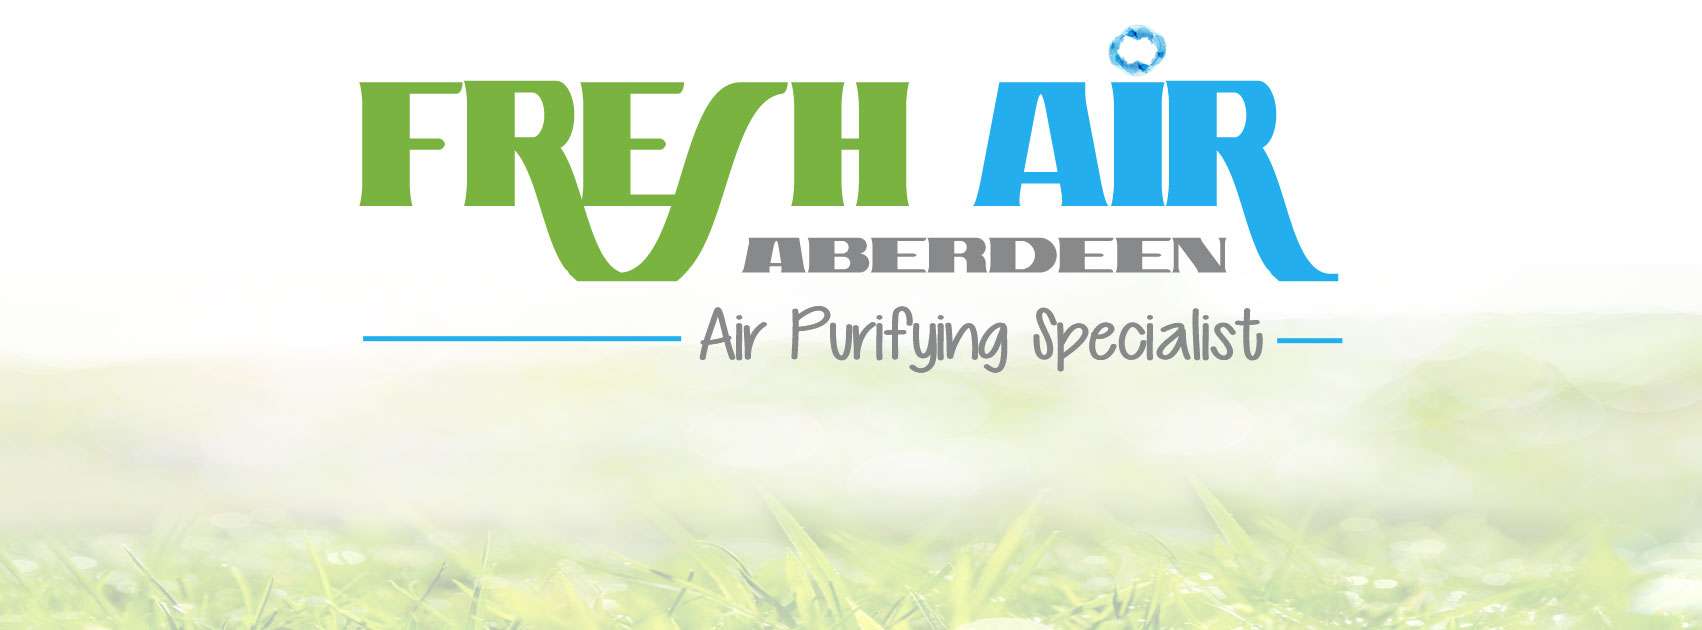 FRESH AIR ABERDEEN